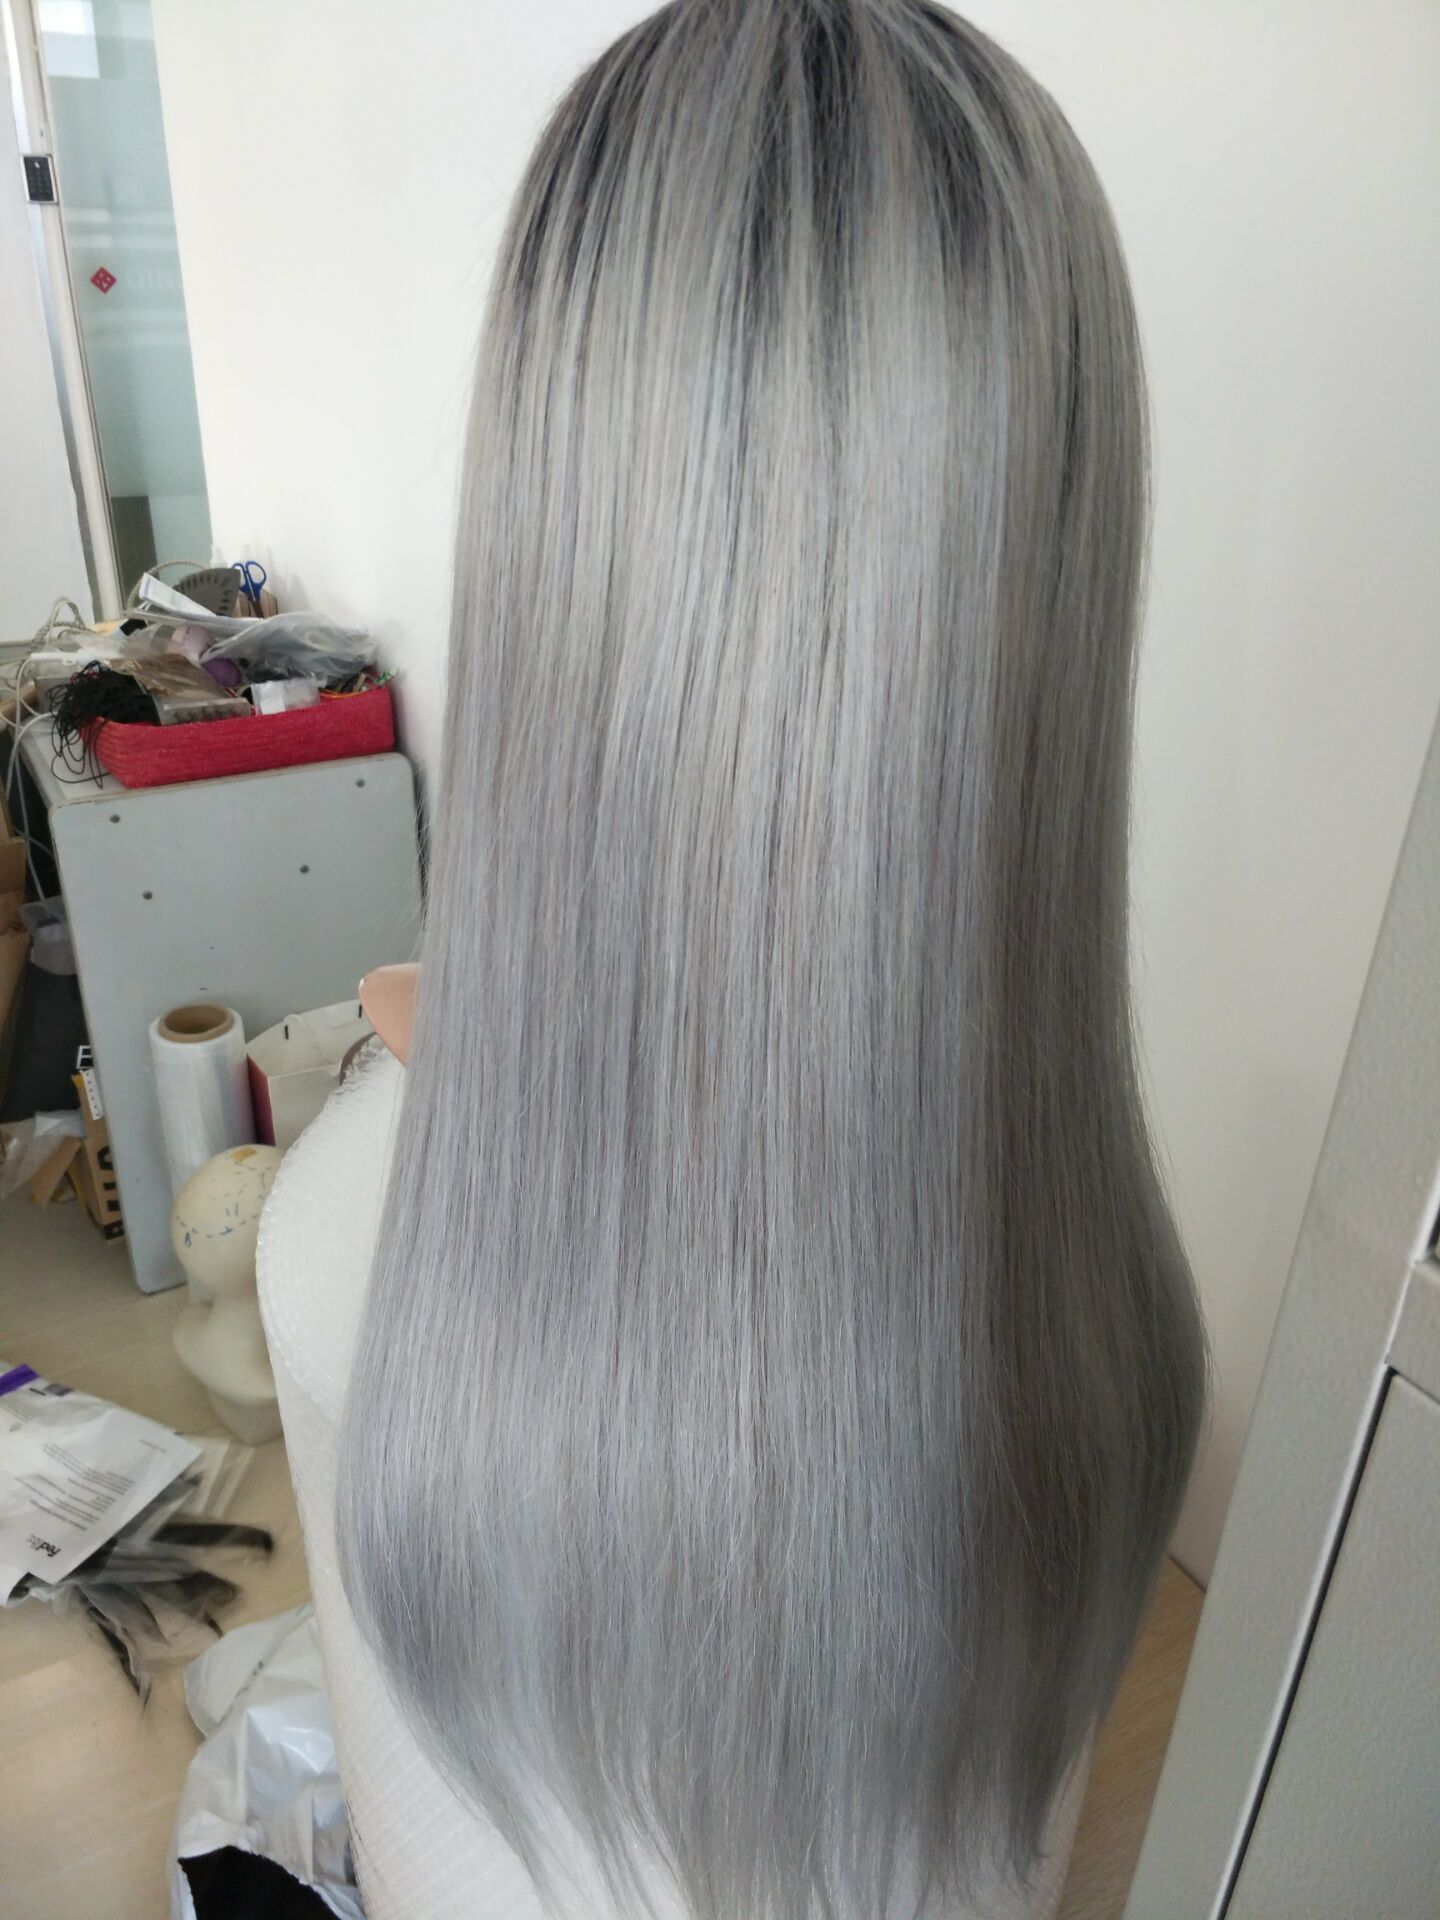 Silver gray wigs human lace wig,glueless braided wig,natural wavy hair wig HN301.